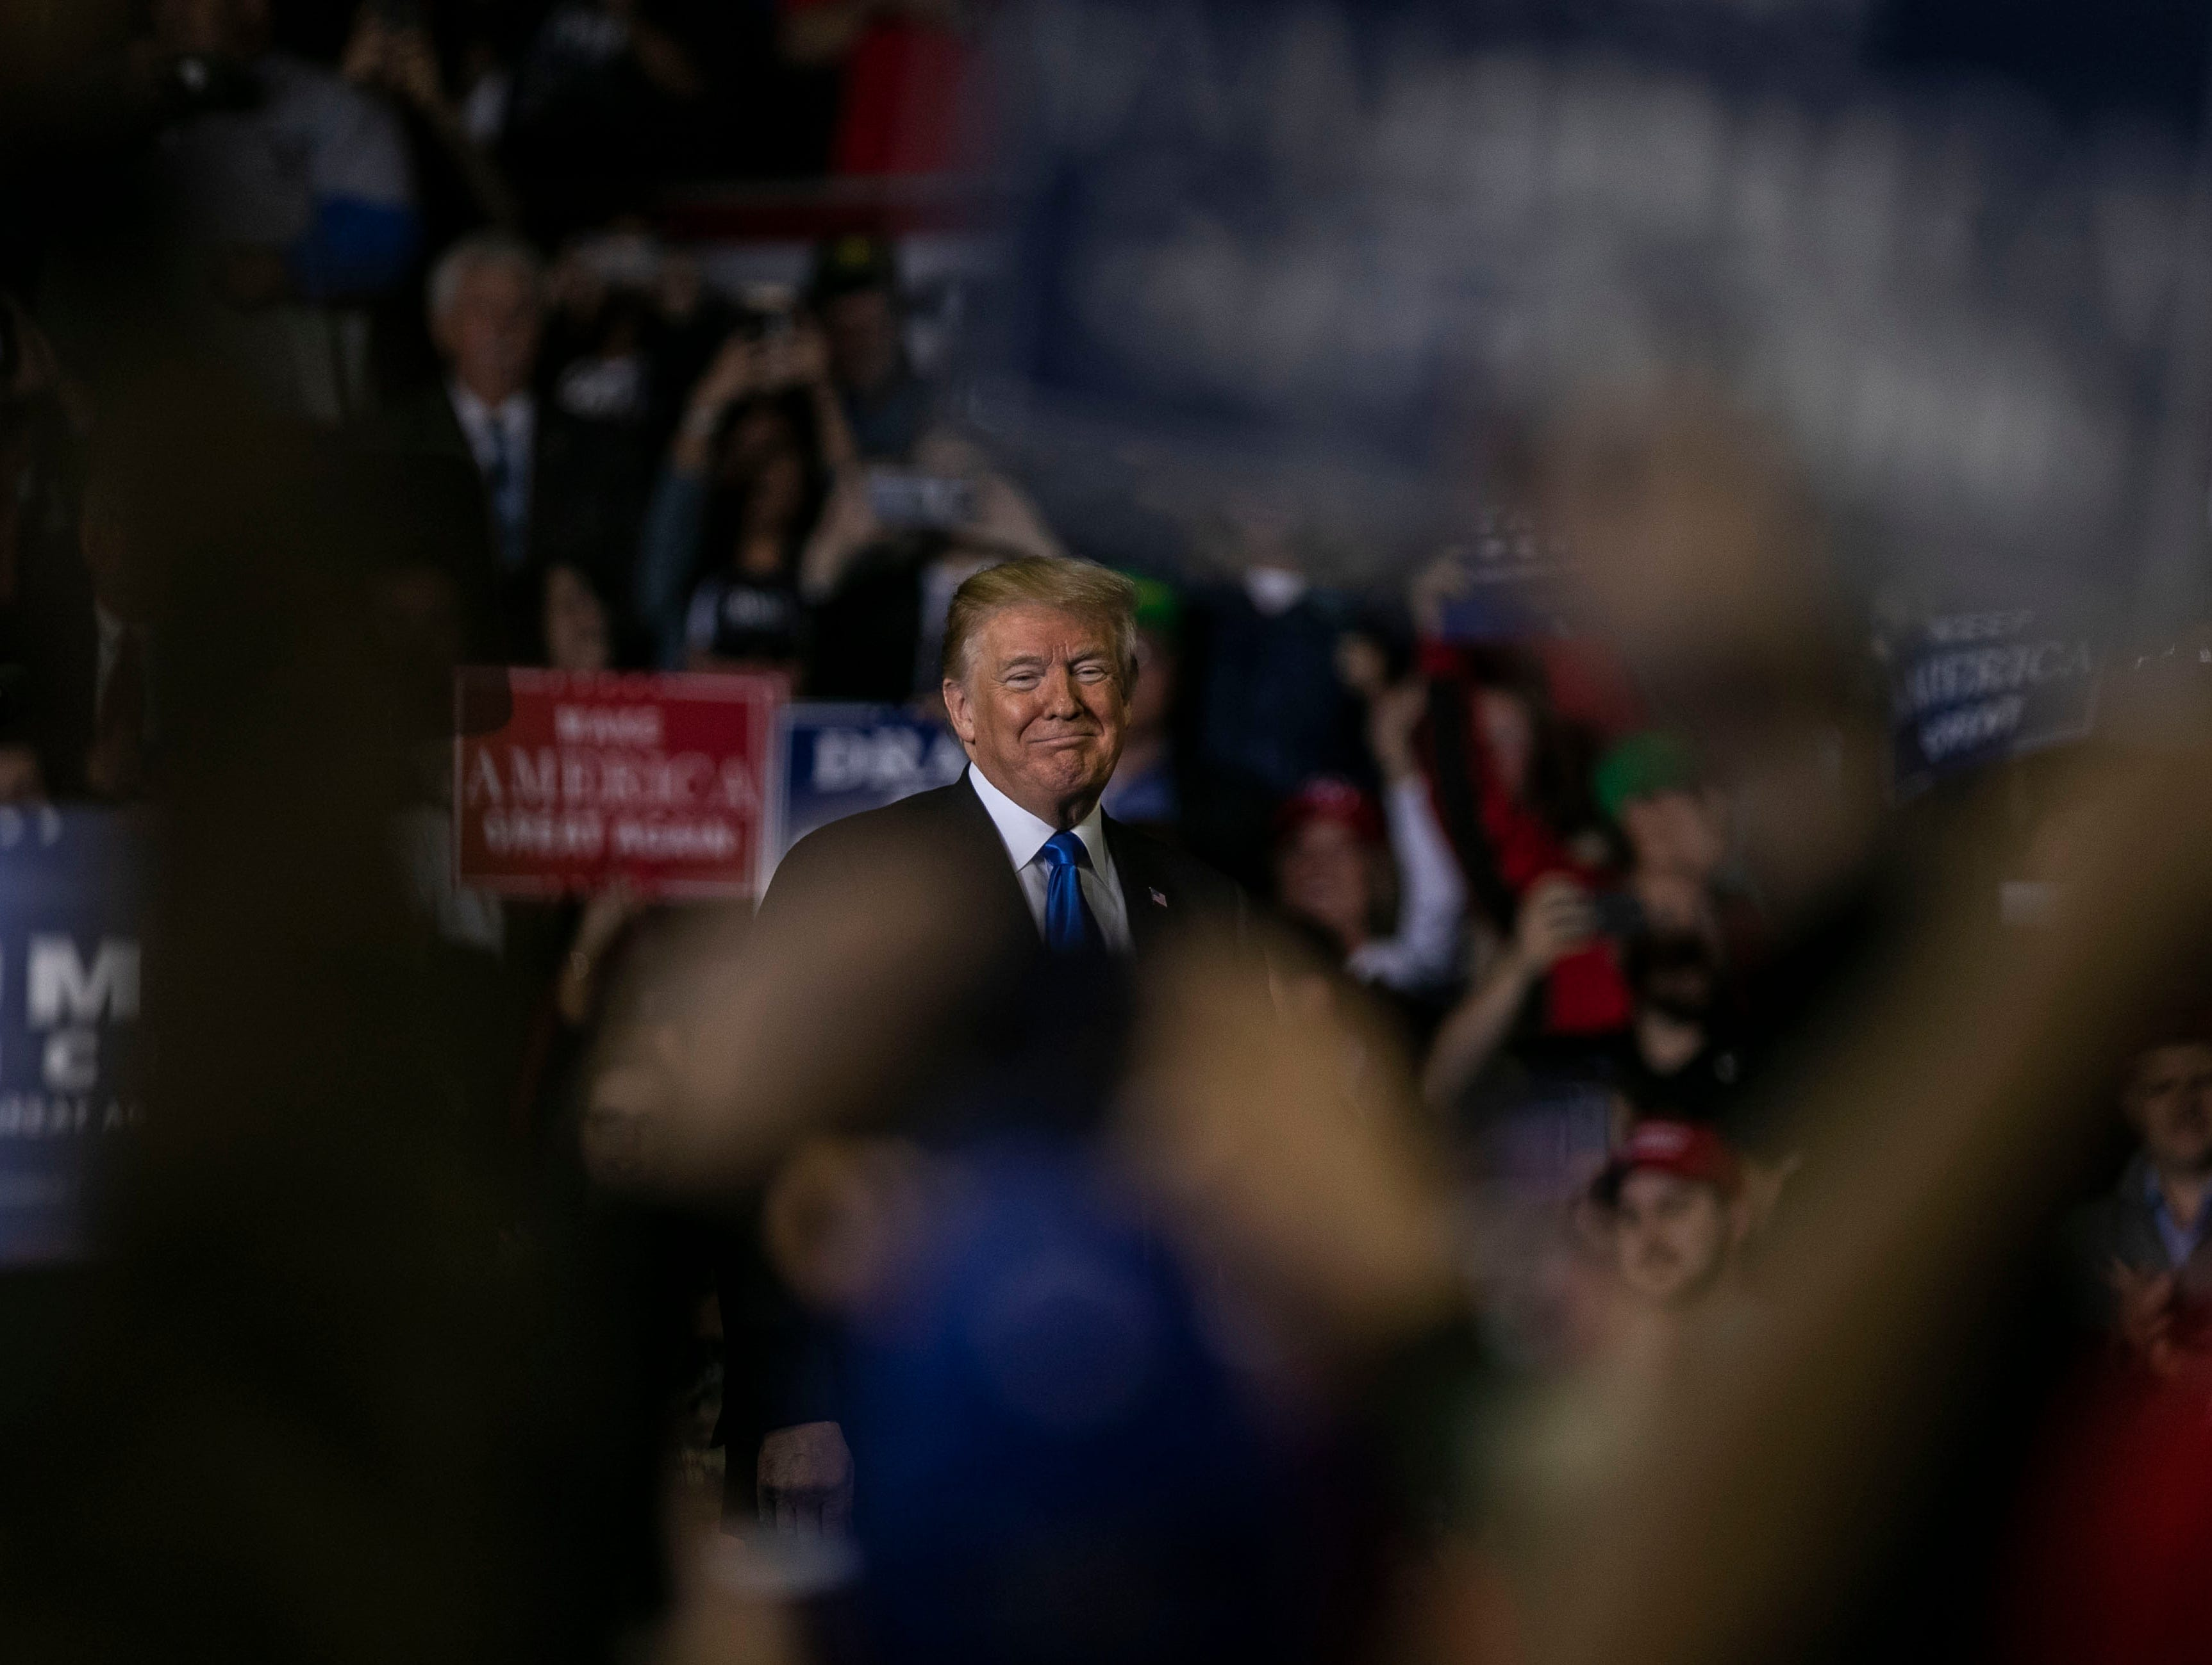 President Donald Trump spoke to cheers from his supporters Saturday night in Richmond at EKU.